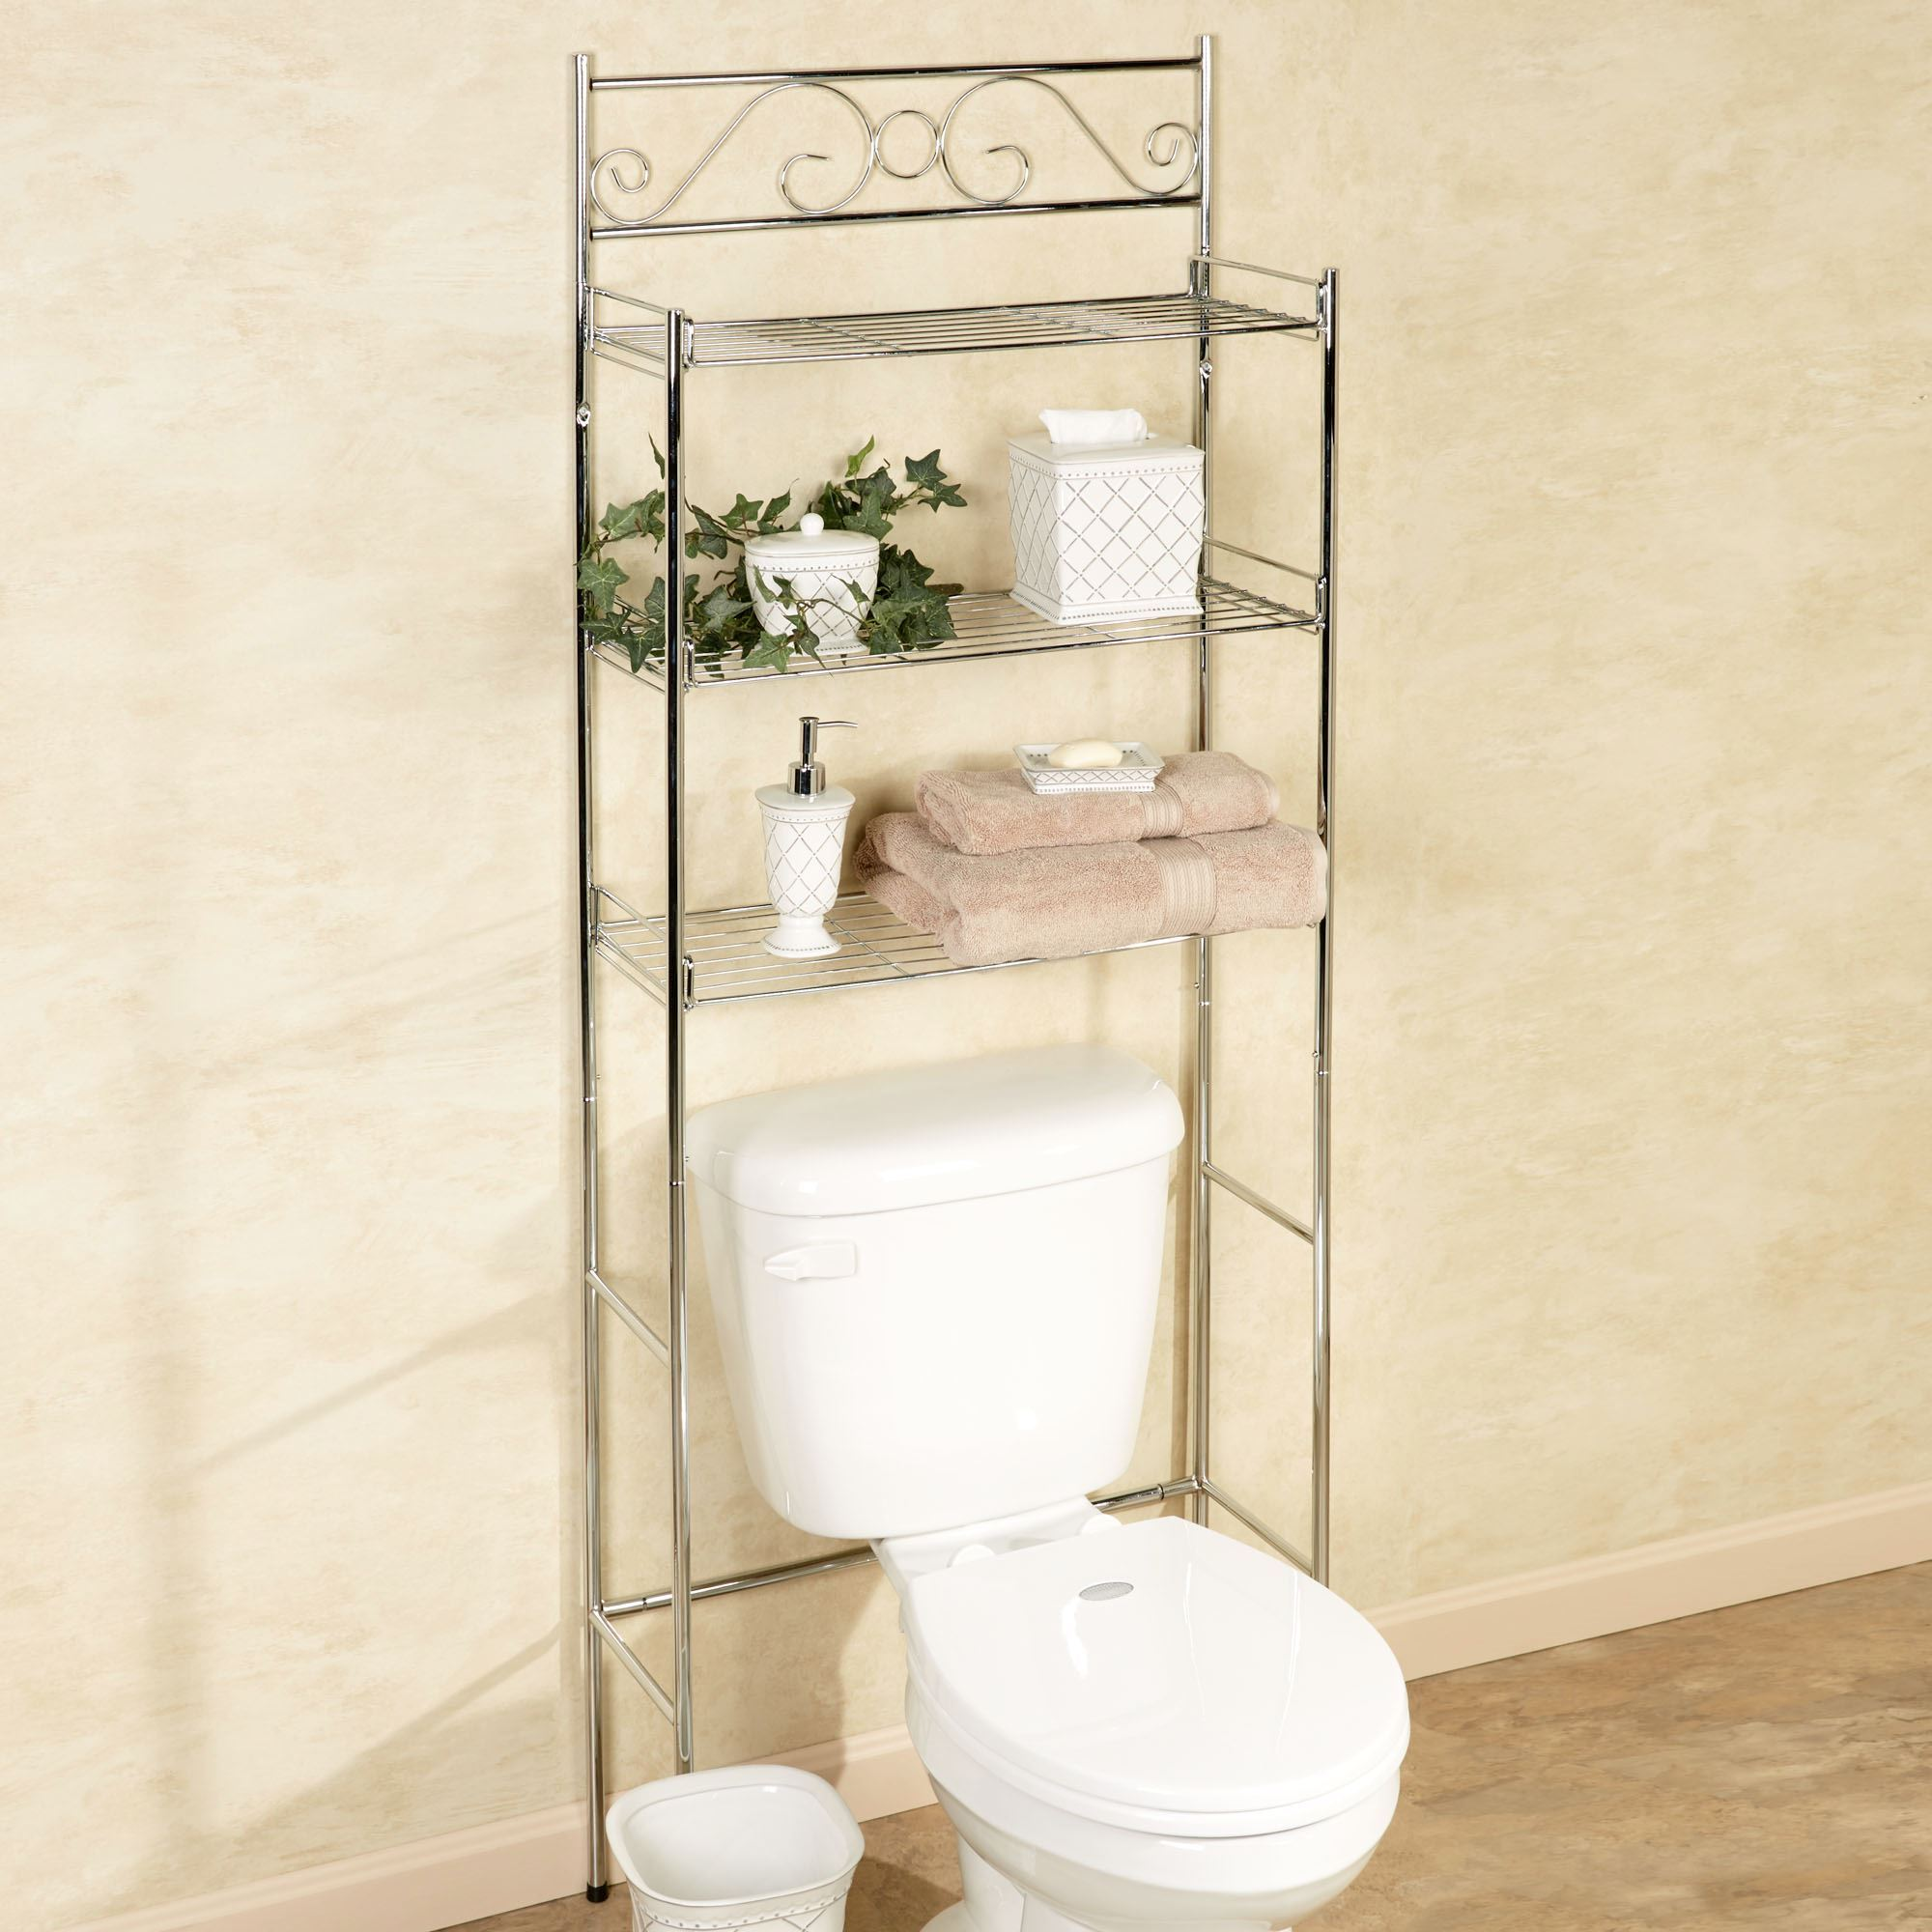 right storage toilet units to ikea wood and space the corner saver design shelves ideas bathroom add etagere with plus